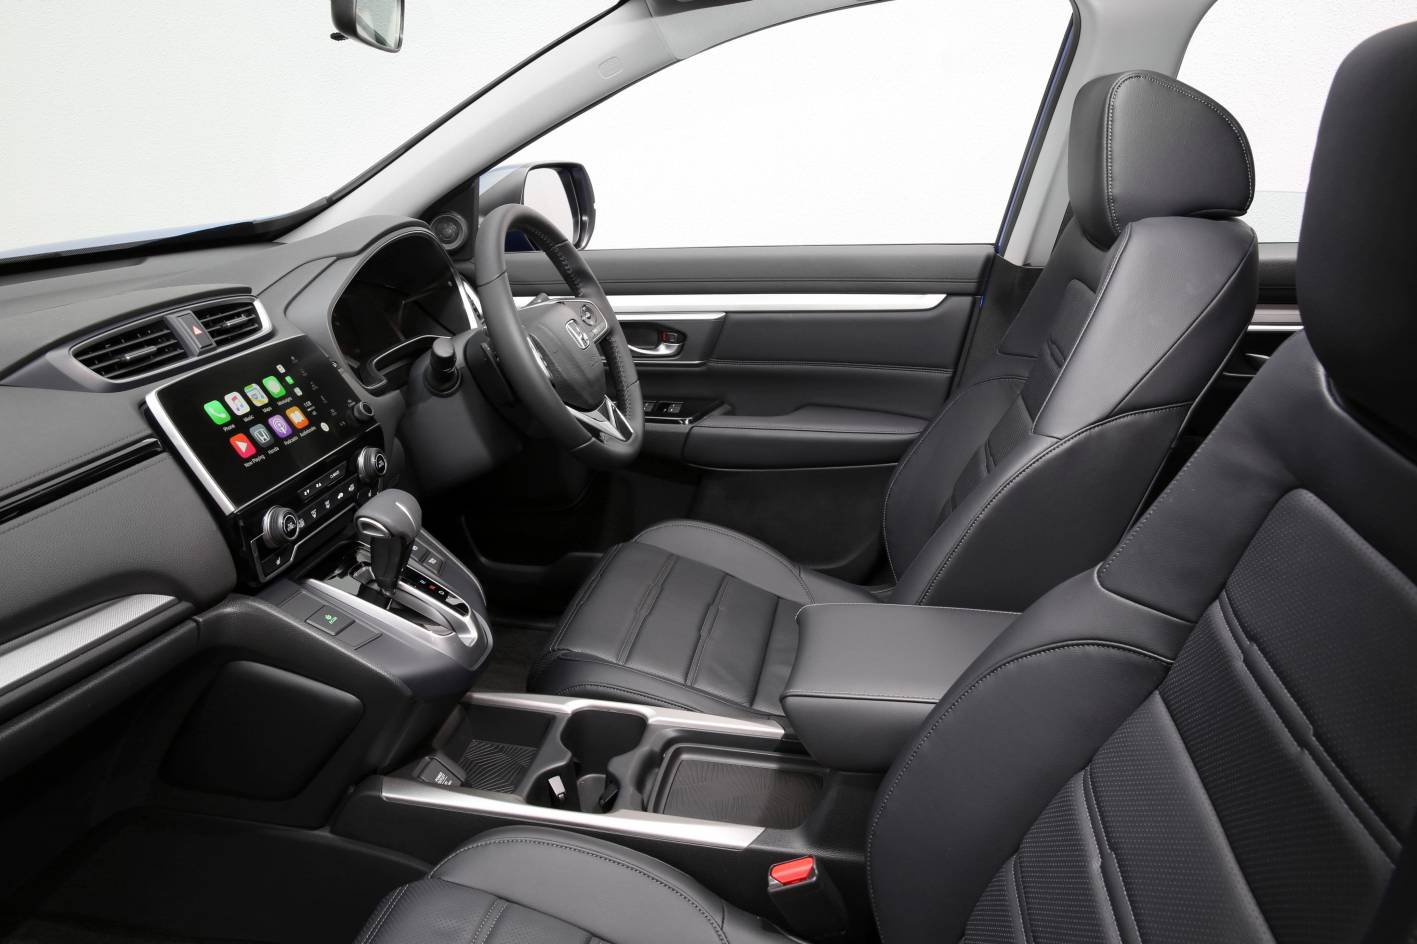 new honda crv interior 2019 honda crv interior car 2018 2019 car 2018 2019 new 2018 honda crv. Black Bedroom Furniture Sets. Home Design Ideas